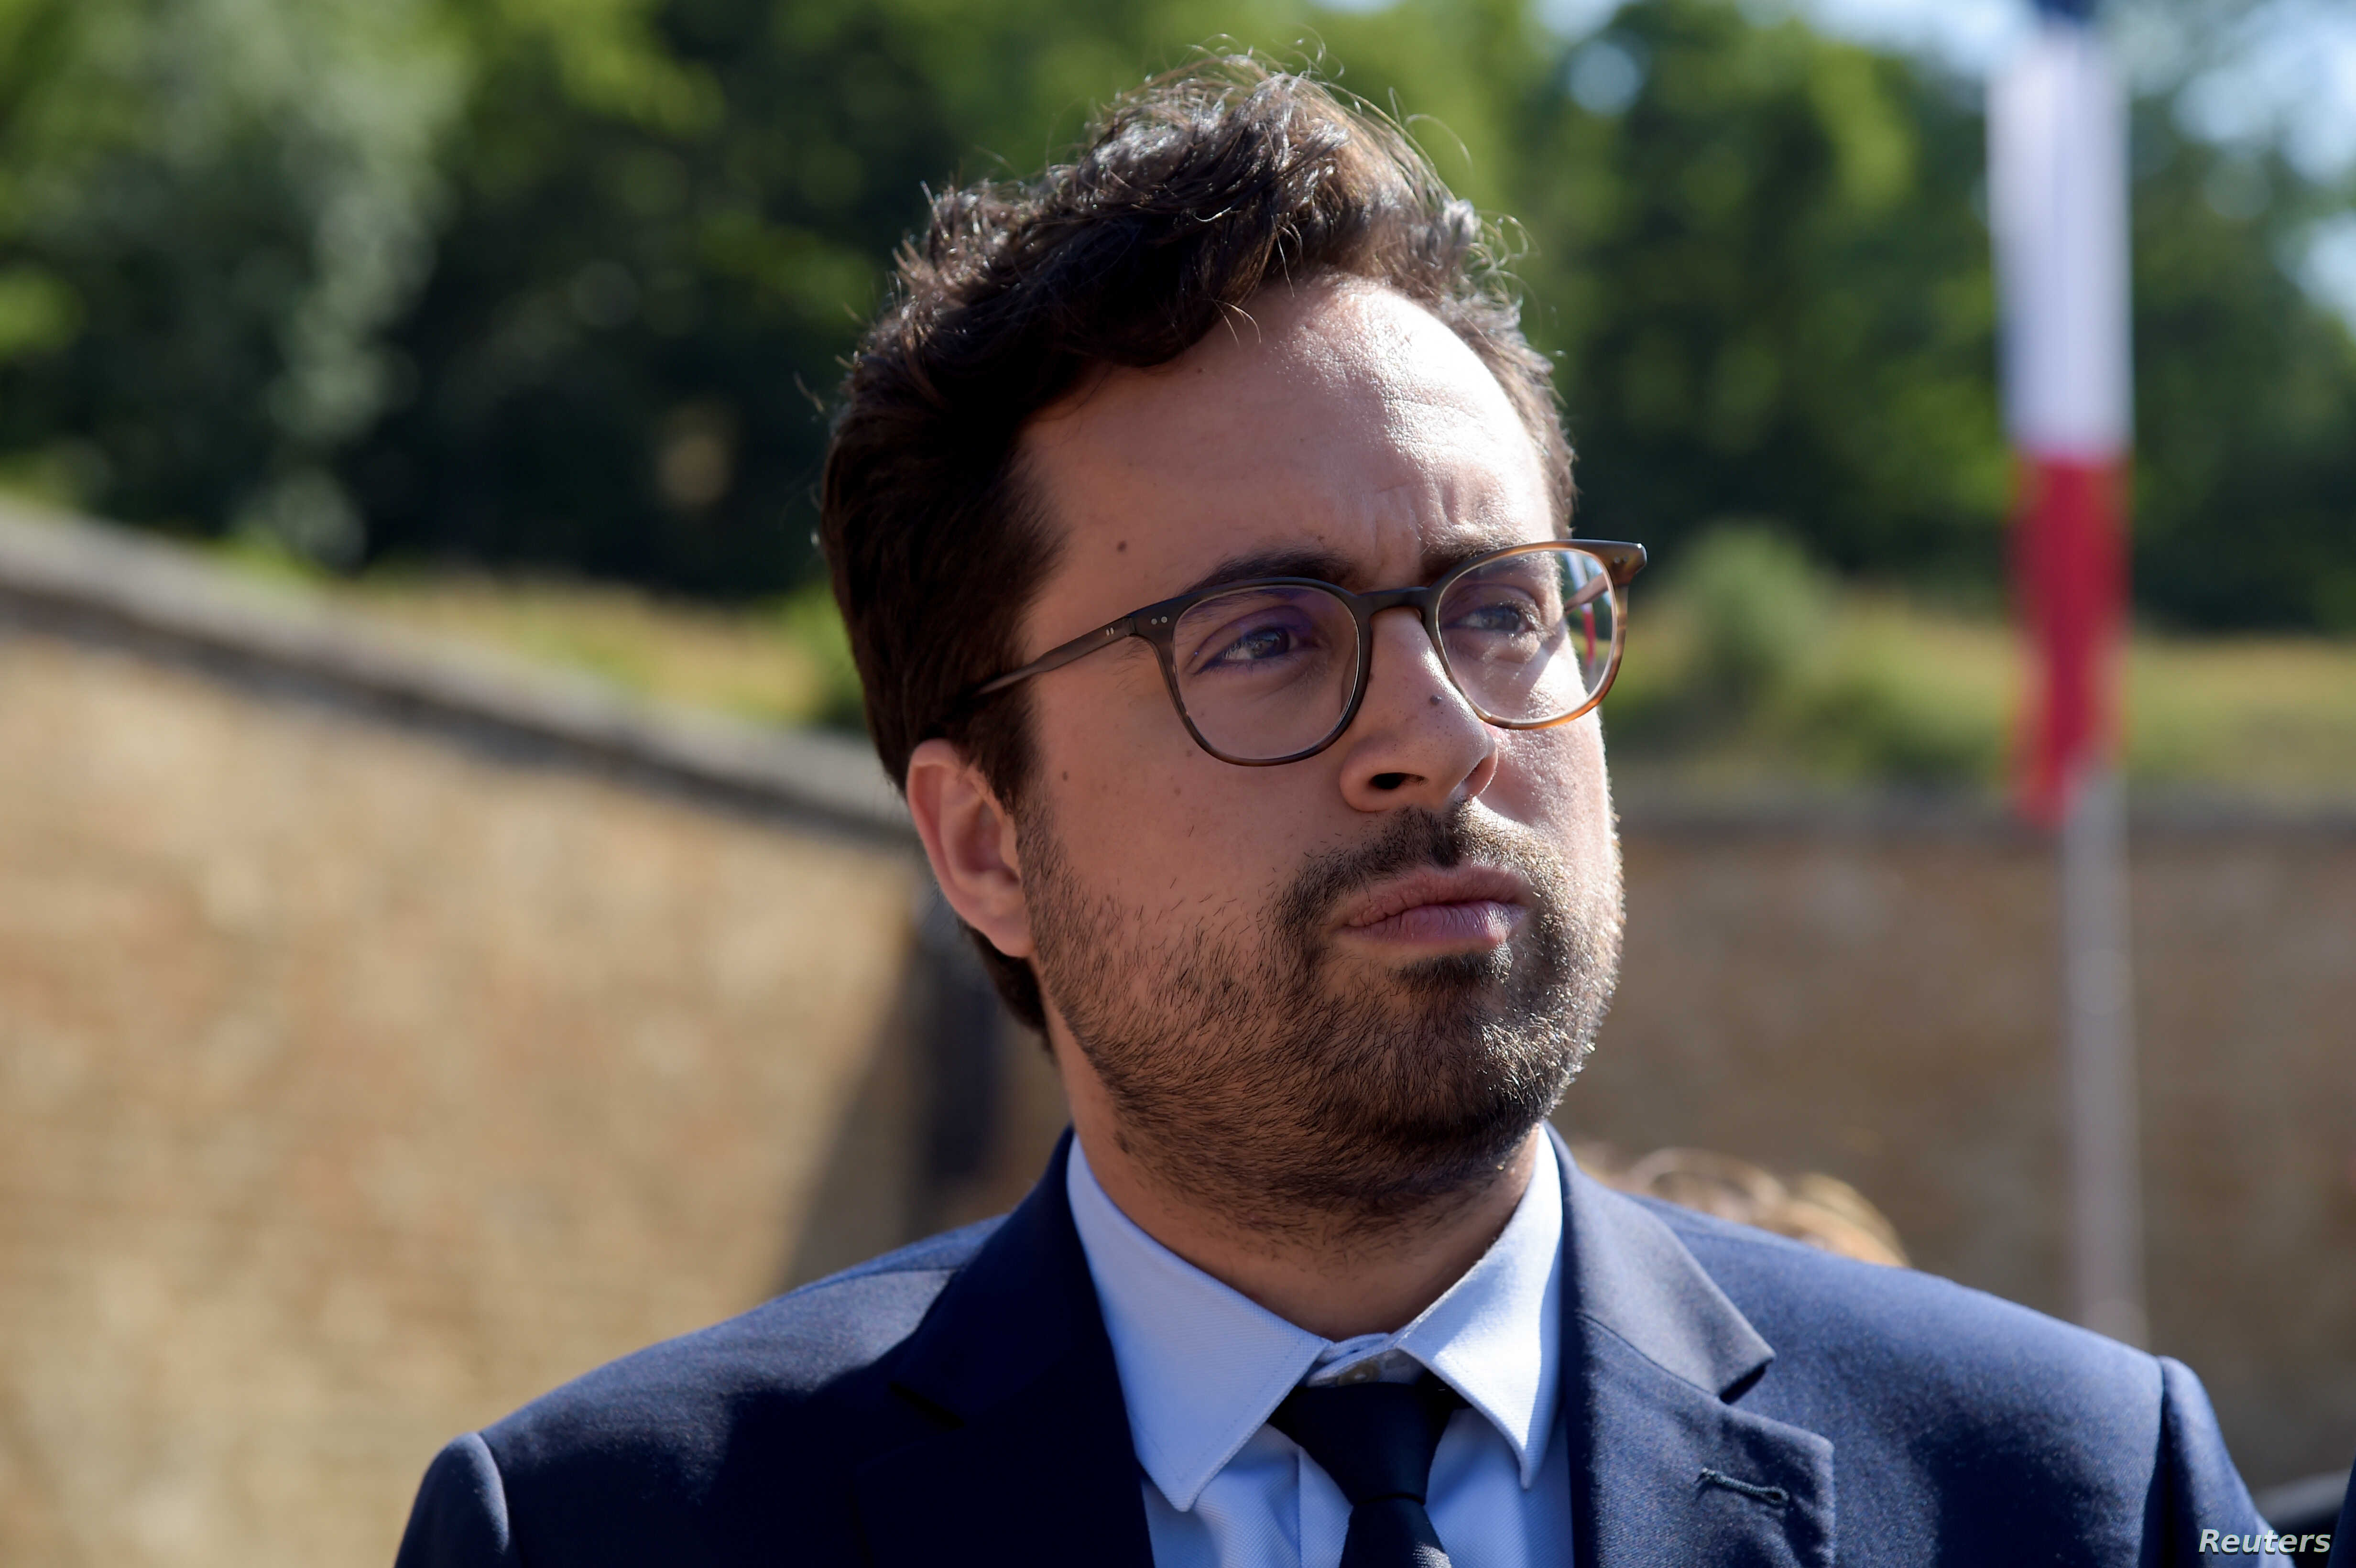 French junior minister for the Digital Sector Mounir Mahjoubi attends the ceremony to mark the 77th anniversary of late French General Charles de Gaulle's resistance call of June 18, 1940, near Paris, June 18, 2017.